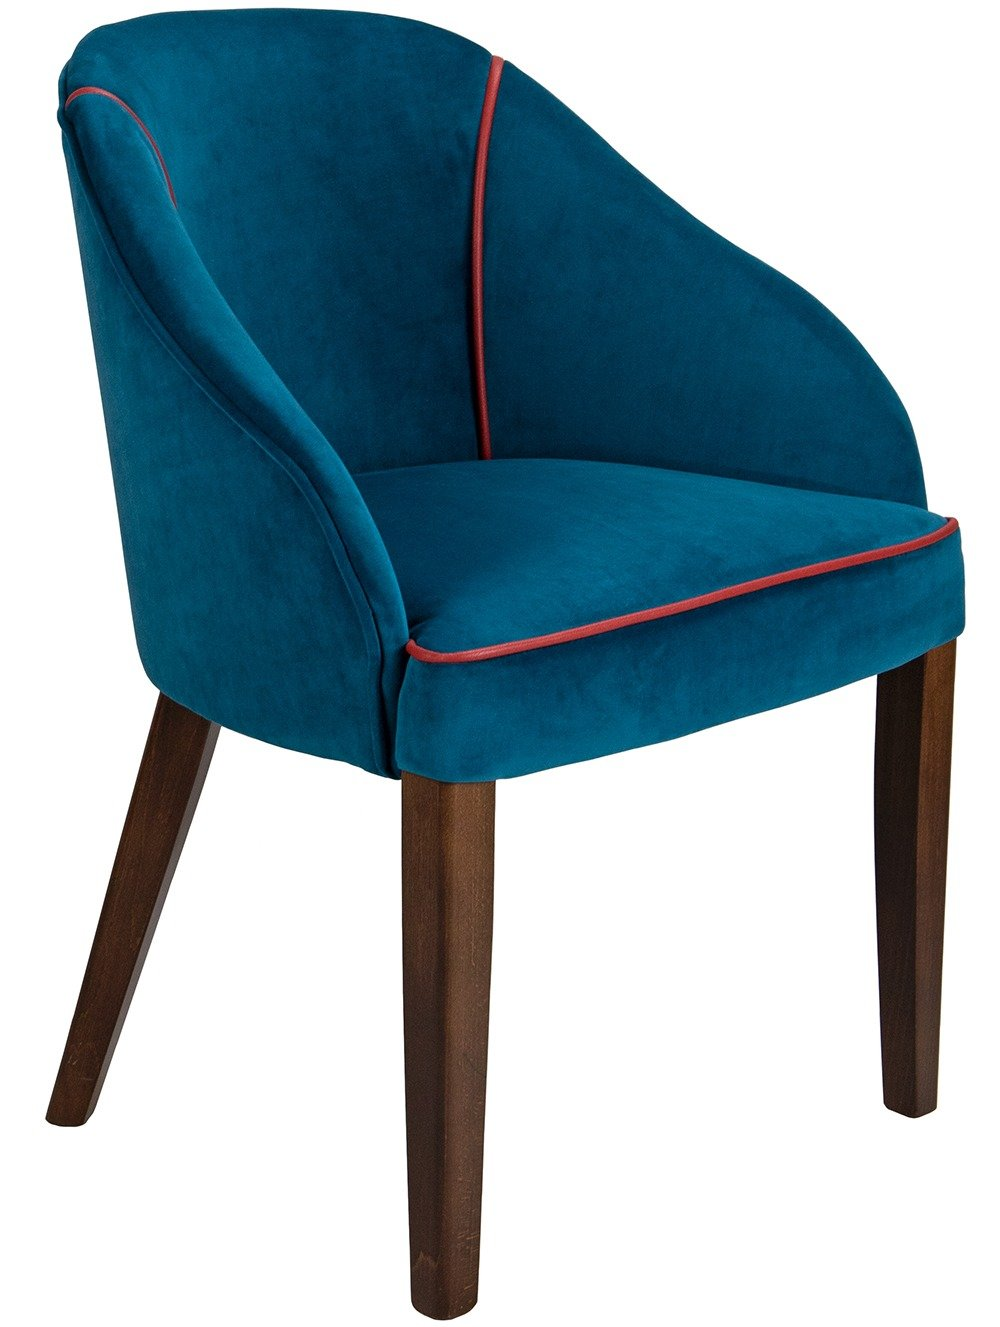 Ruby Tub Chair from a 45 degree angle